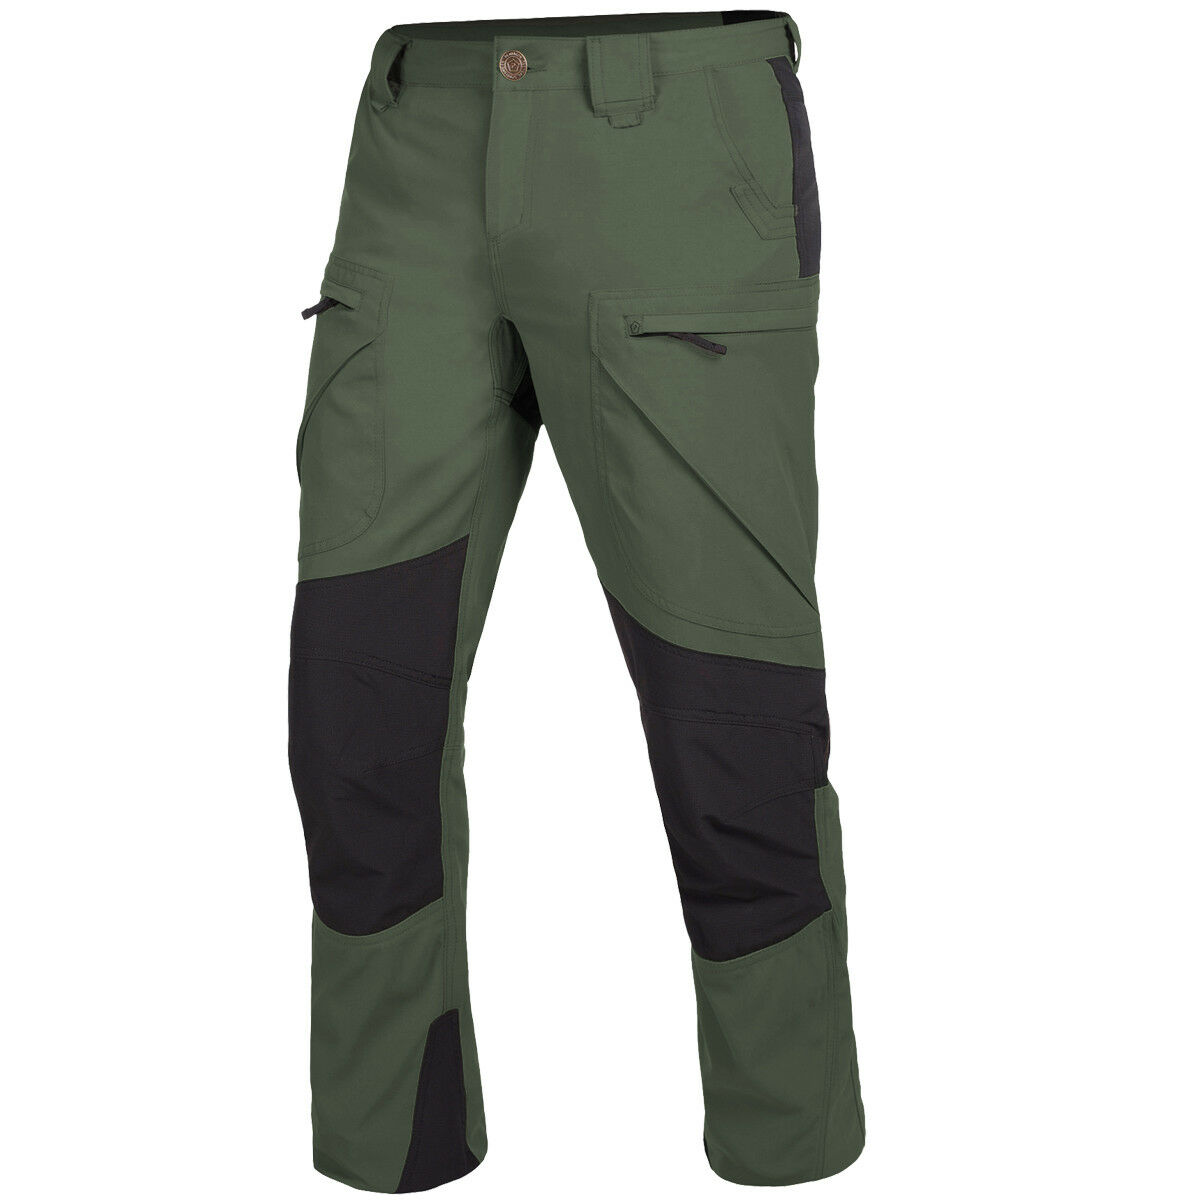 Pentagon Vorras Climbing Pants Outdoor Tactical Reinforced Trousers Camo Green